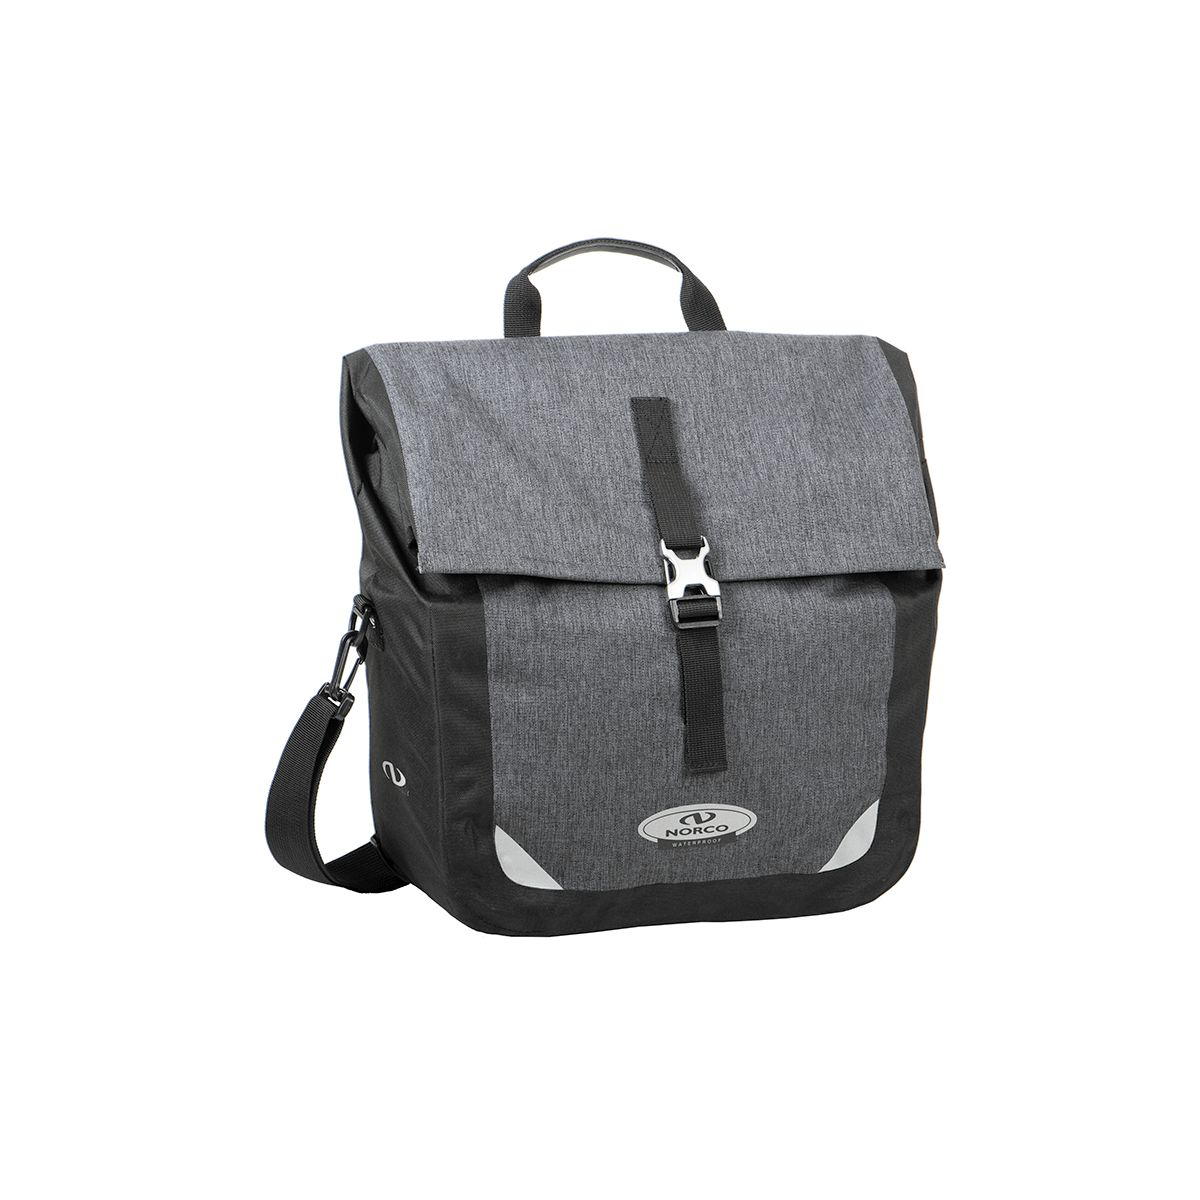 KINSLEY CITY BAG KS pannier